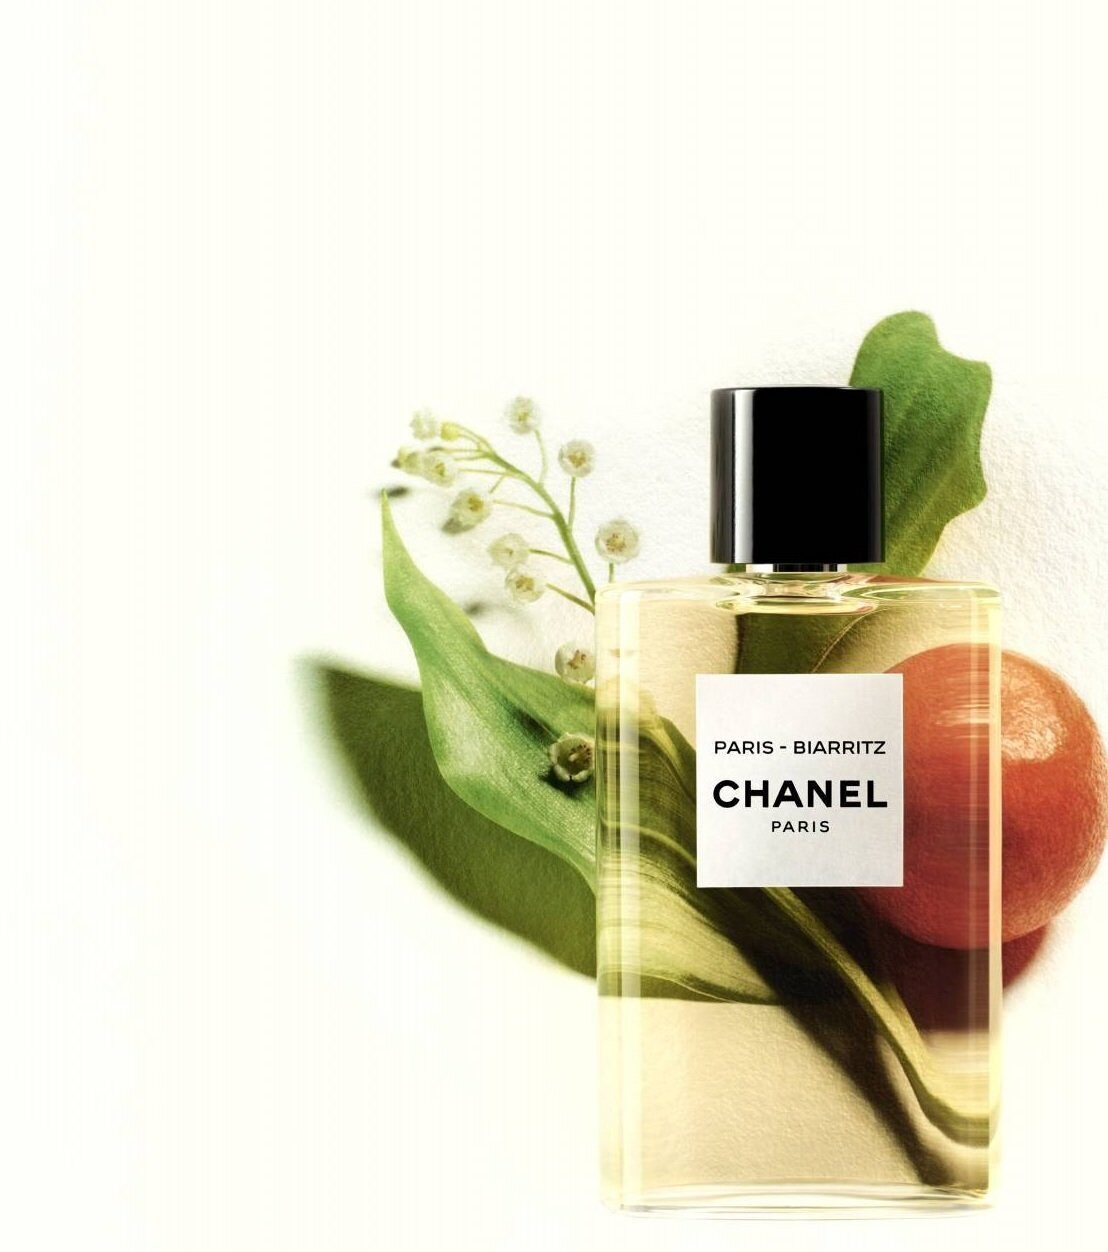 Chanel PARIS-BIARRITZ 125 ML